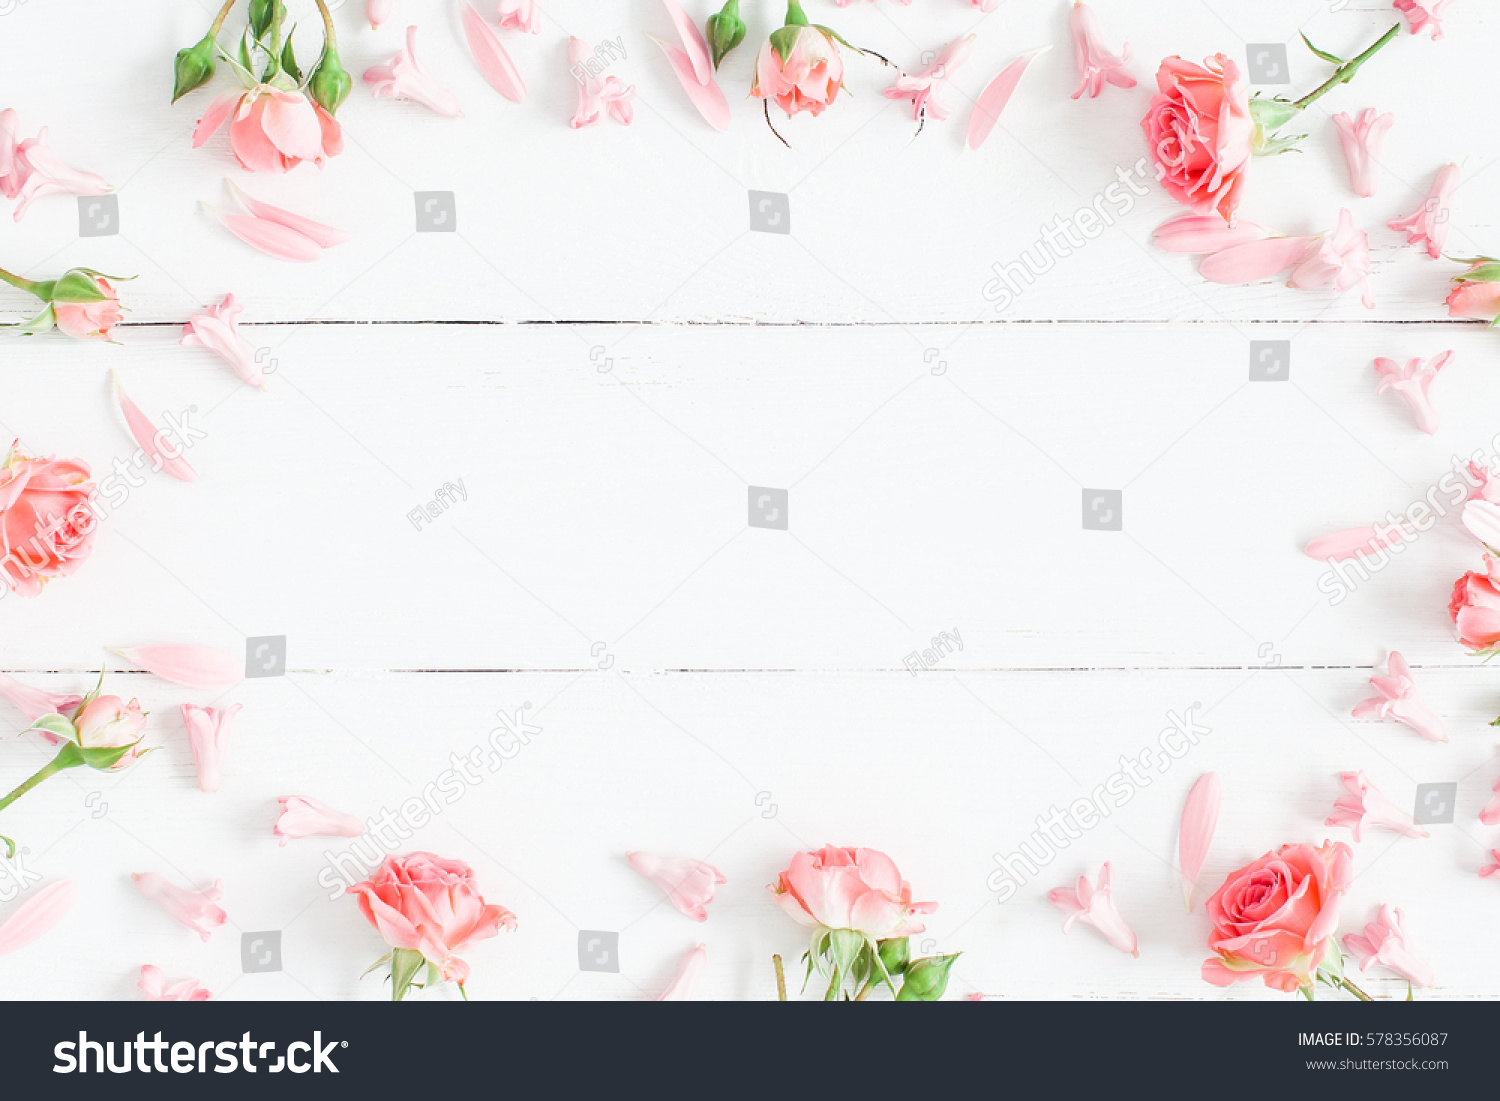 Spring flowers pink flowers on white stock photo royalty free spring flowers pink flowers on white wooden background flat lay top view mightylinksfo Images